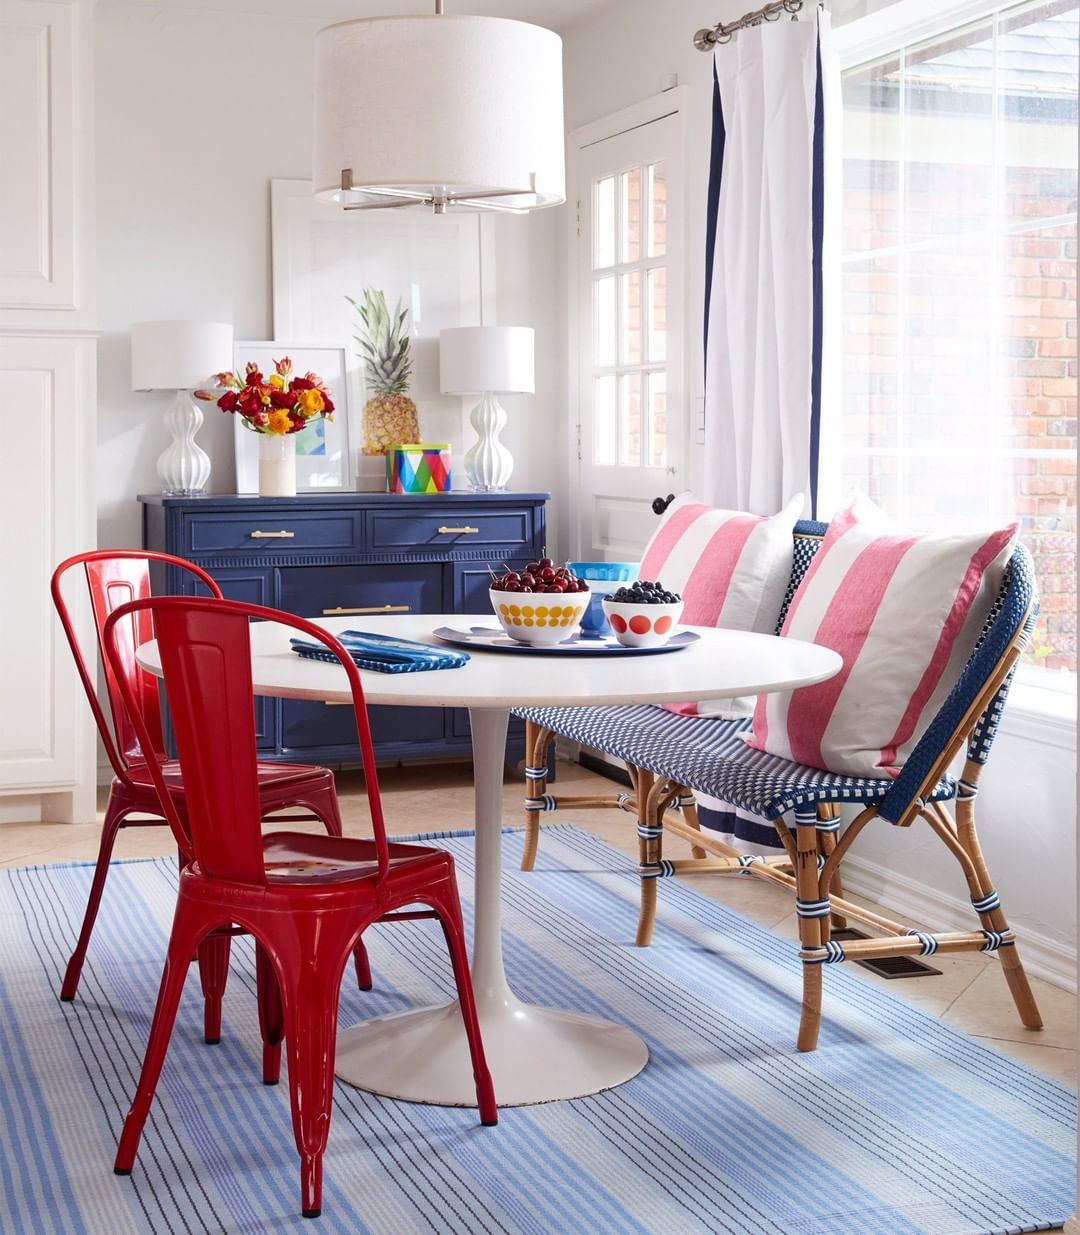 Modern Stunning Decor for Your Porch; 2019 trend home decor; awesome ideas of porch decor; porch decorating ideas